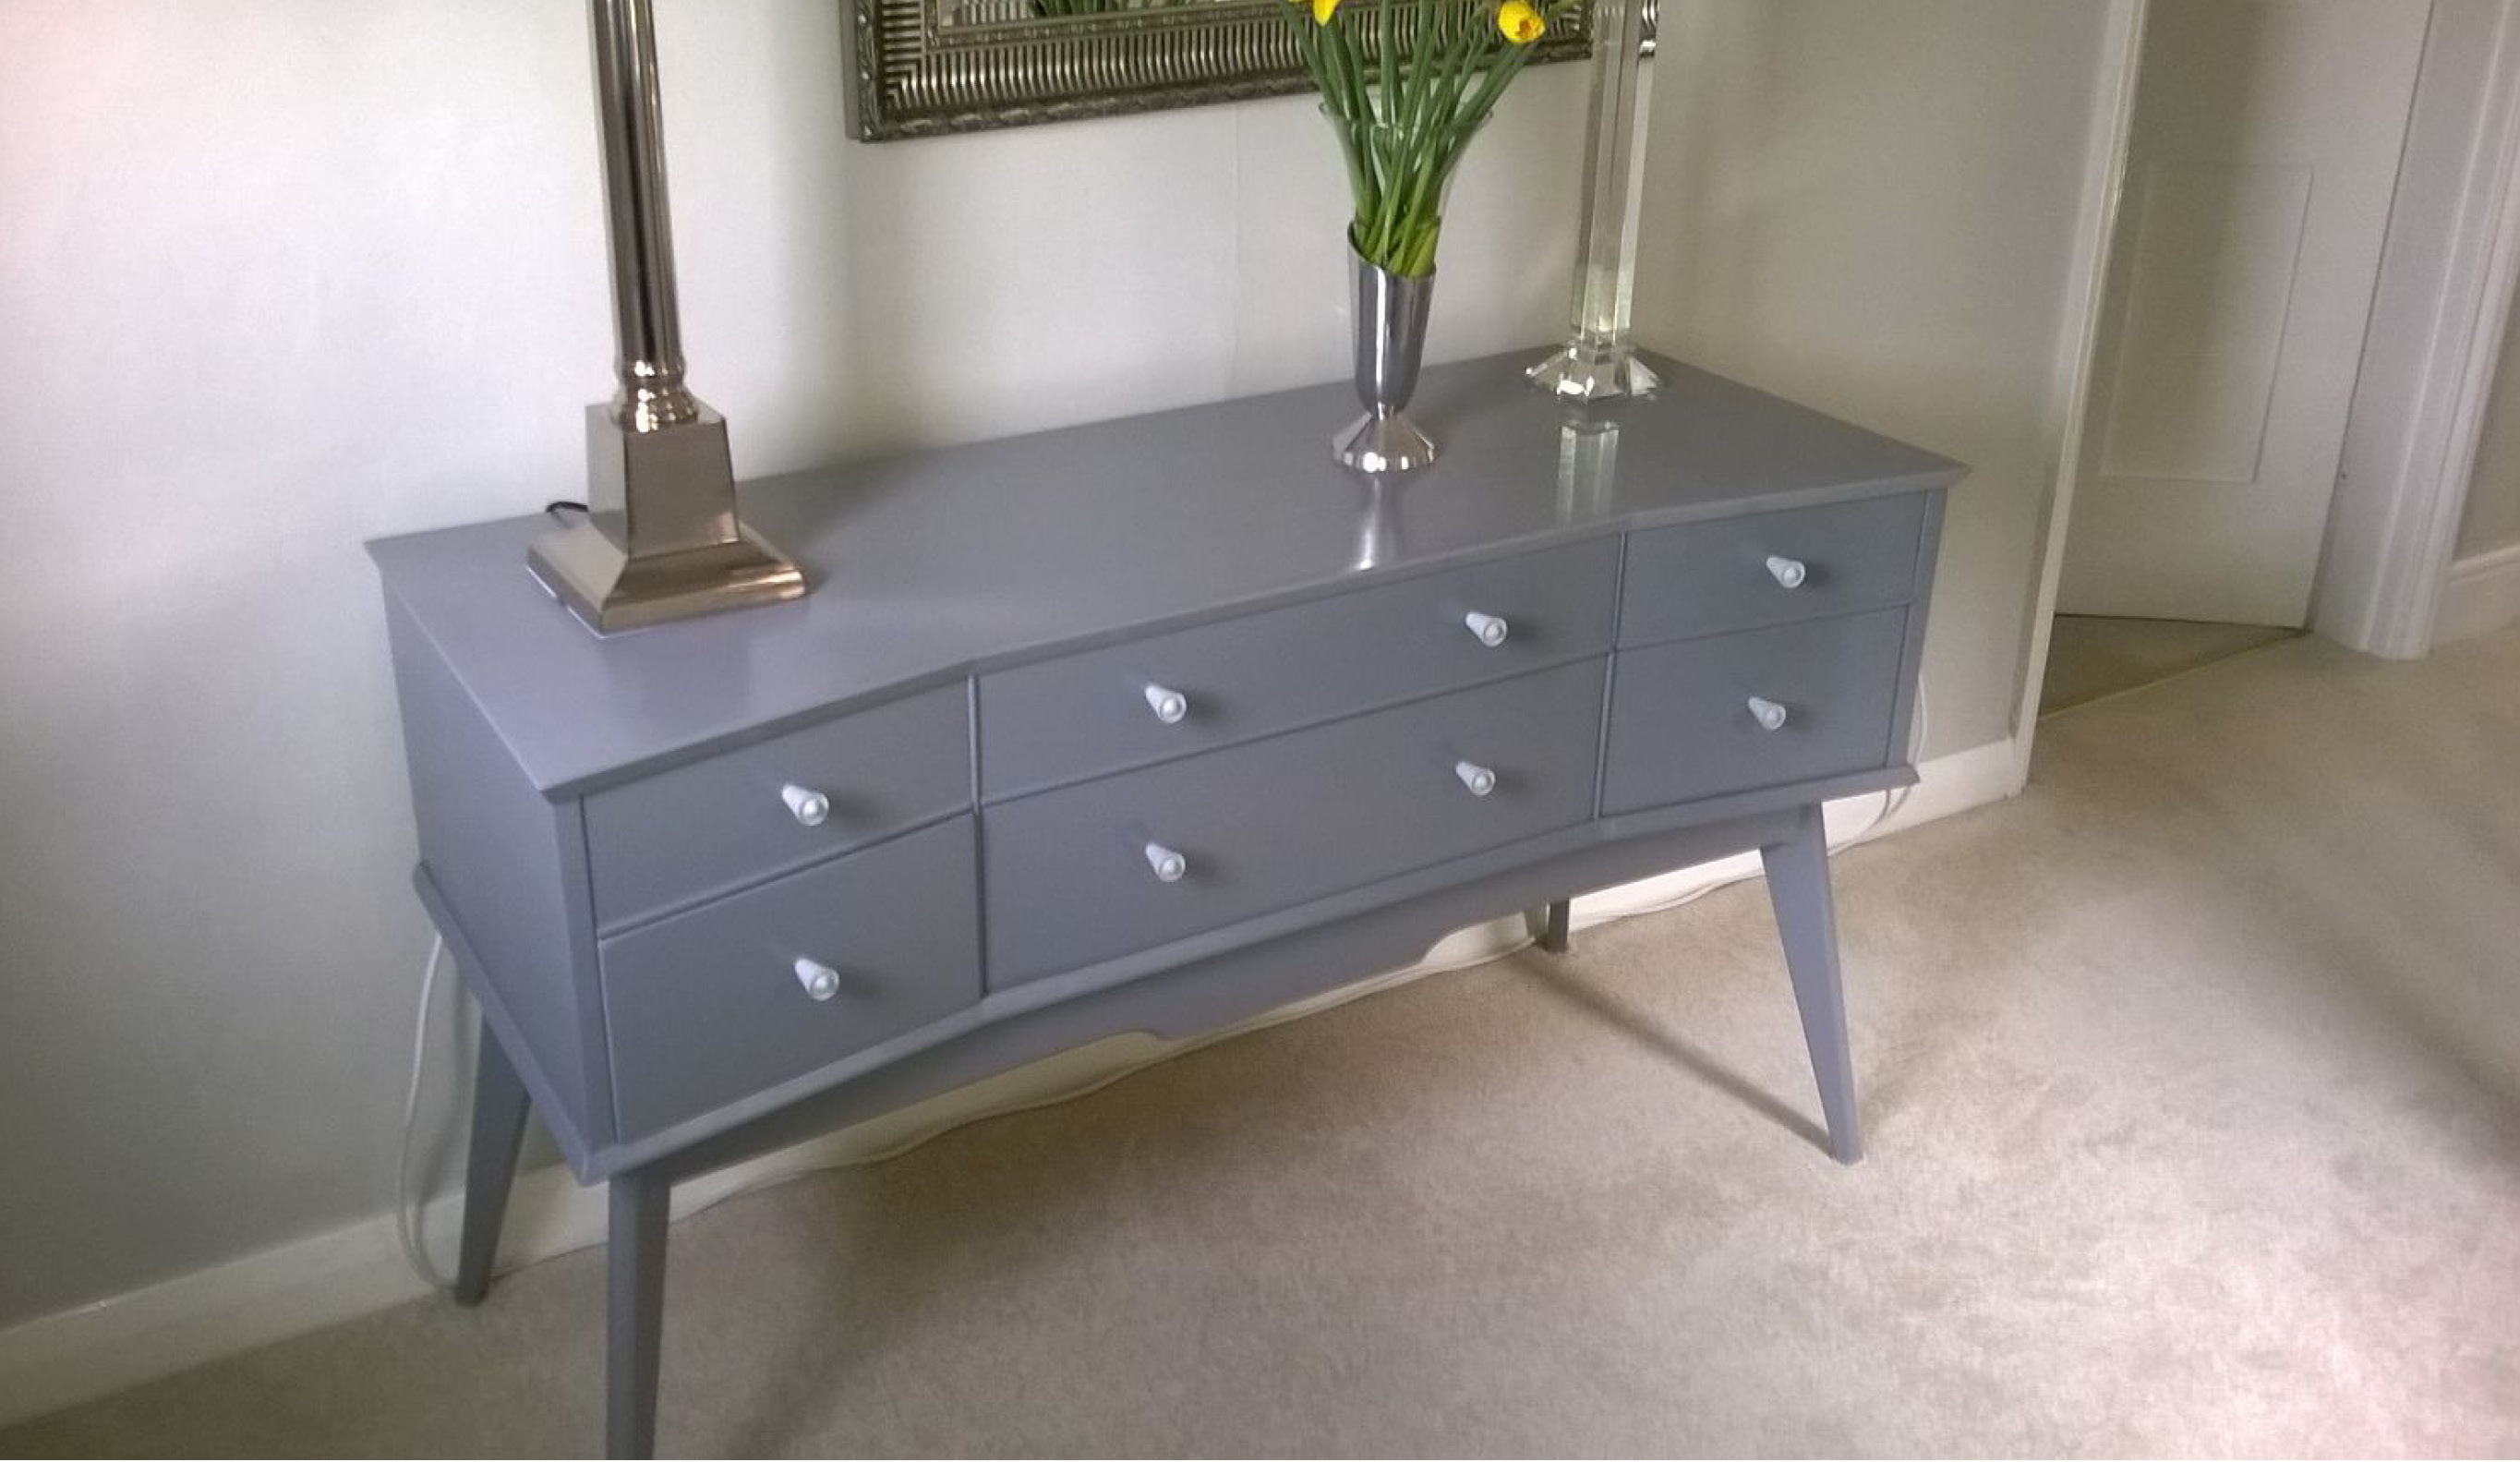 ... Over A Chic Light Oak 1950u0027s Sideboard Using Rust Oleum Satin Finish Furniture  Paint In Slate, By Fully Painting The Piece In The Attractive Mid Grey.